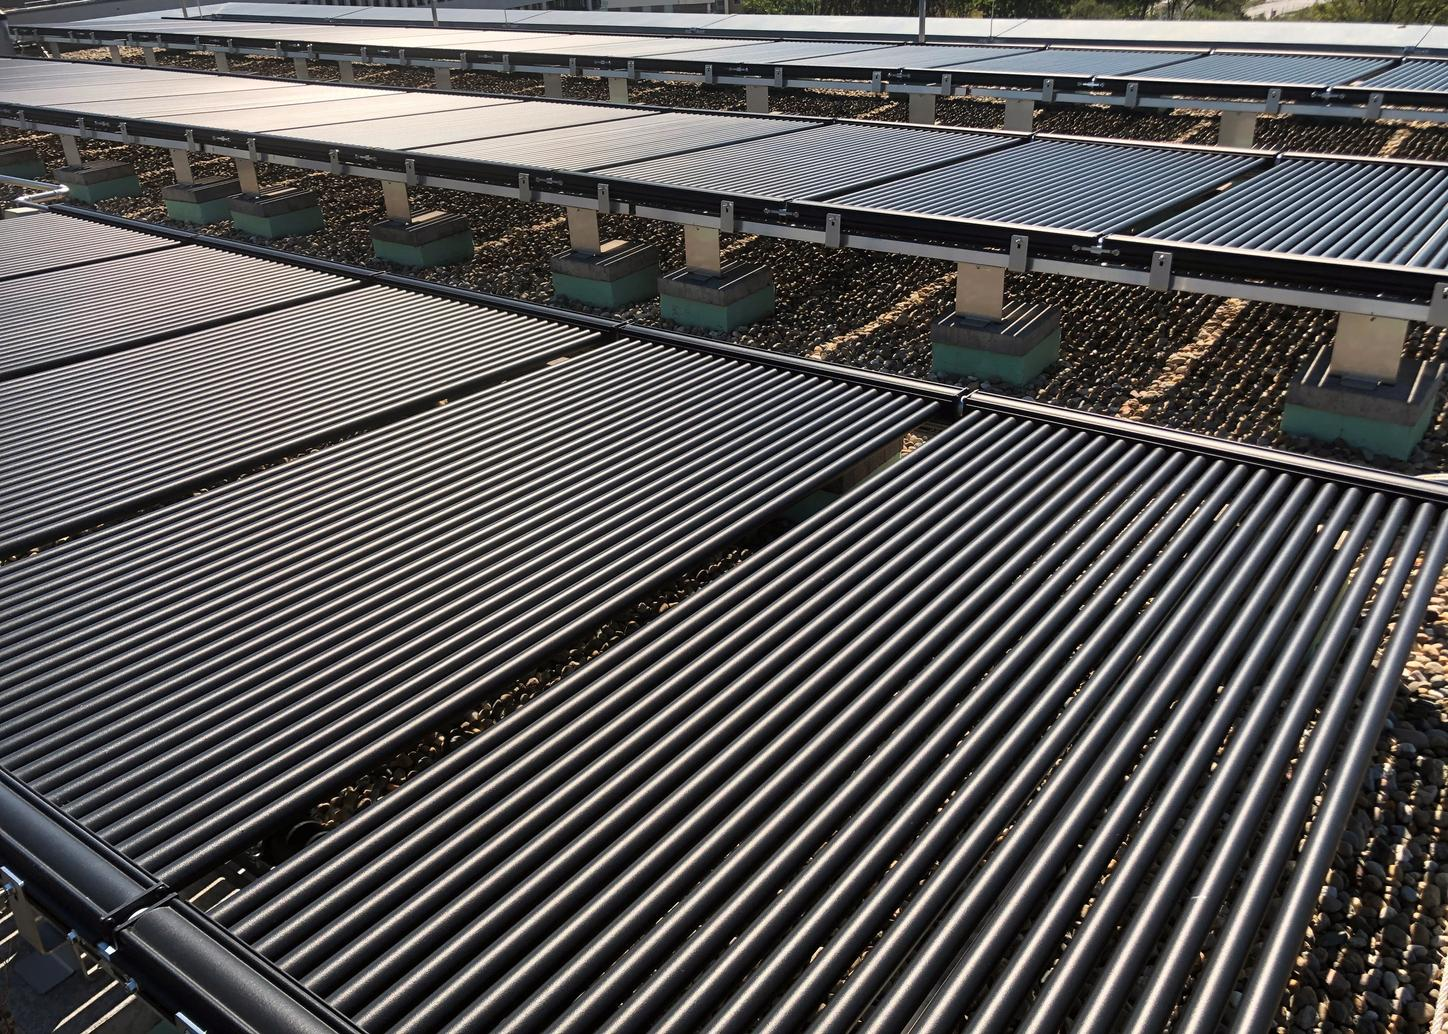 The image shows central solar air absorber unit for the anergy network.